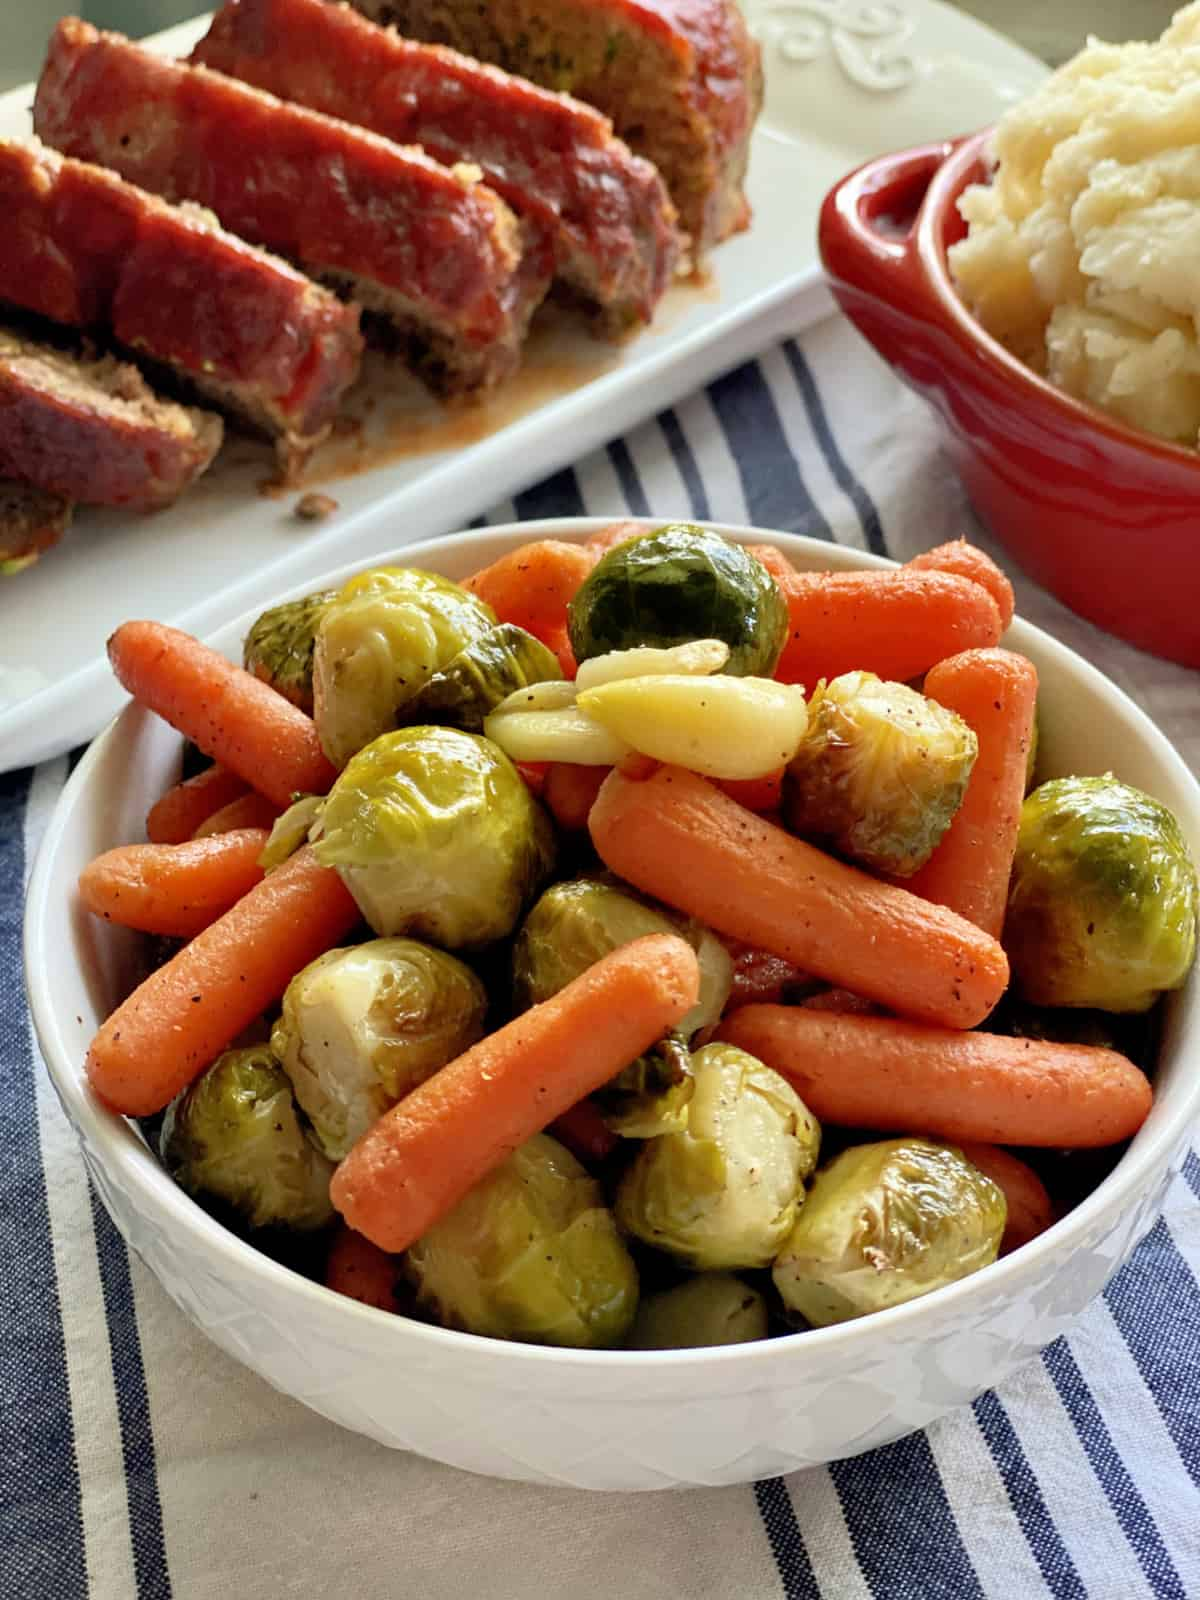 White bowl filled with roasted baby carrots, garlic cloves, and brussels sprouts.